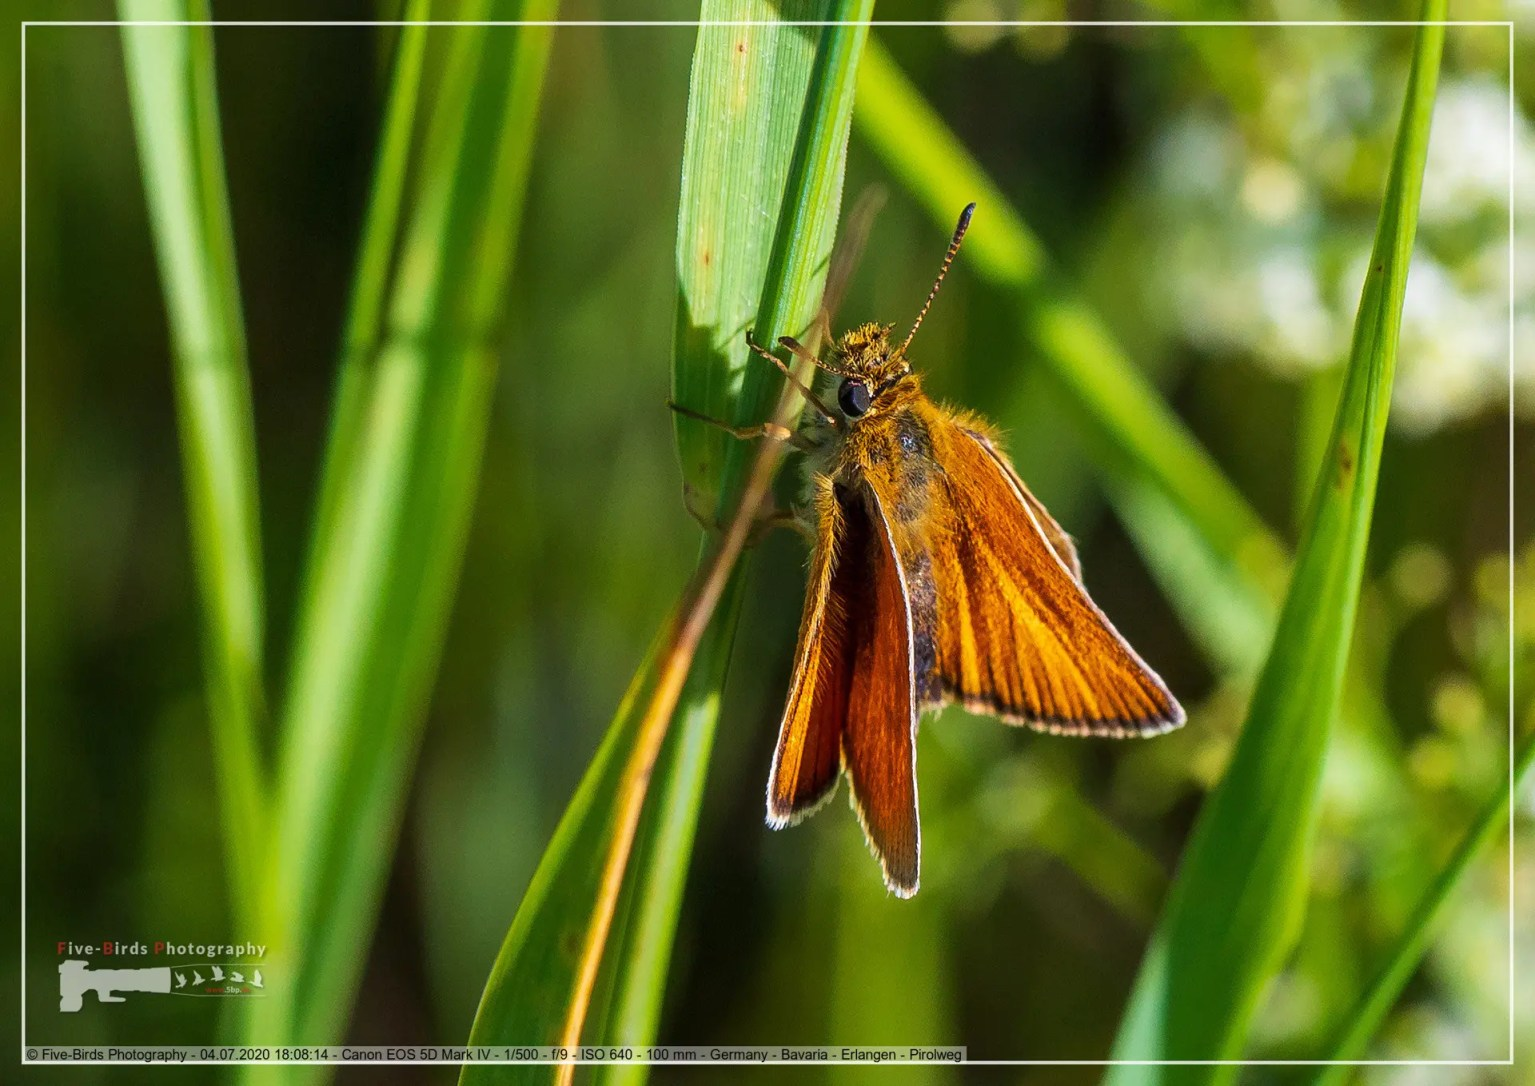 A small skipper sits on a blade of grass